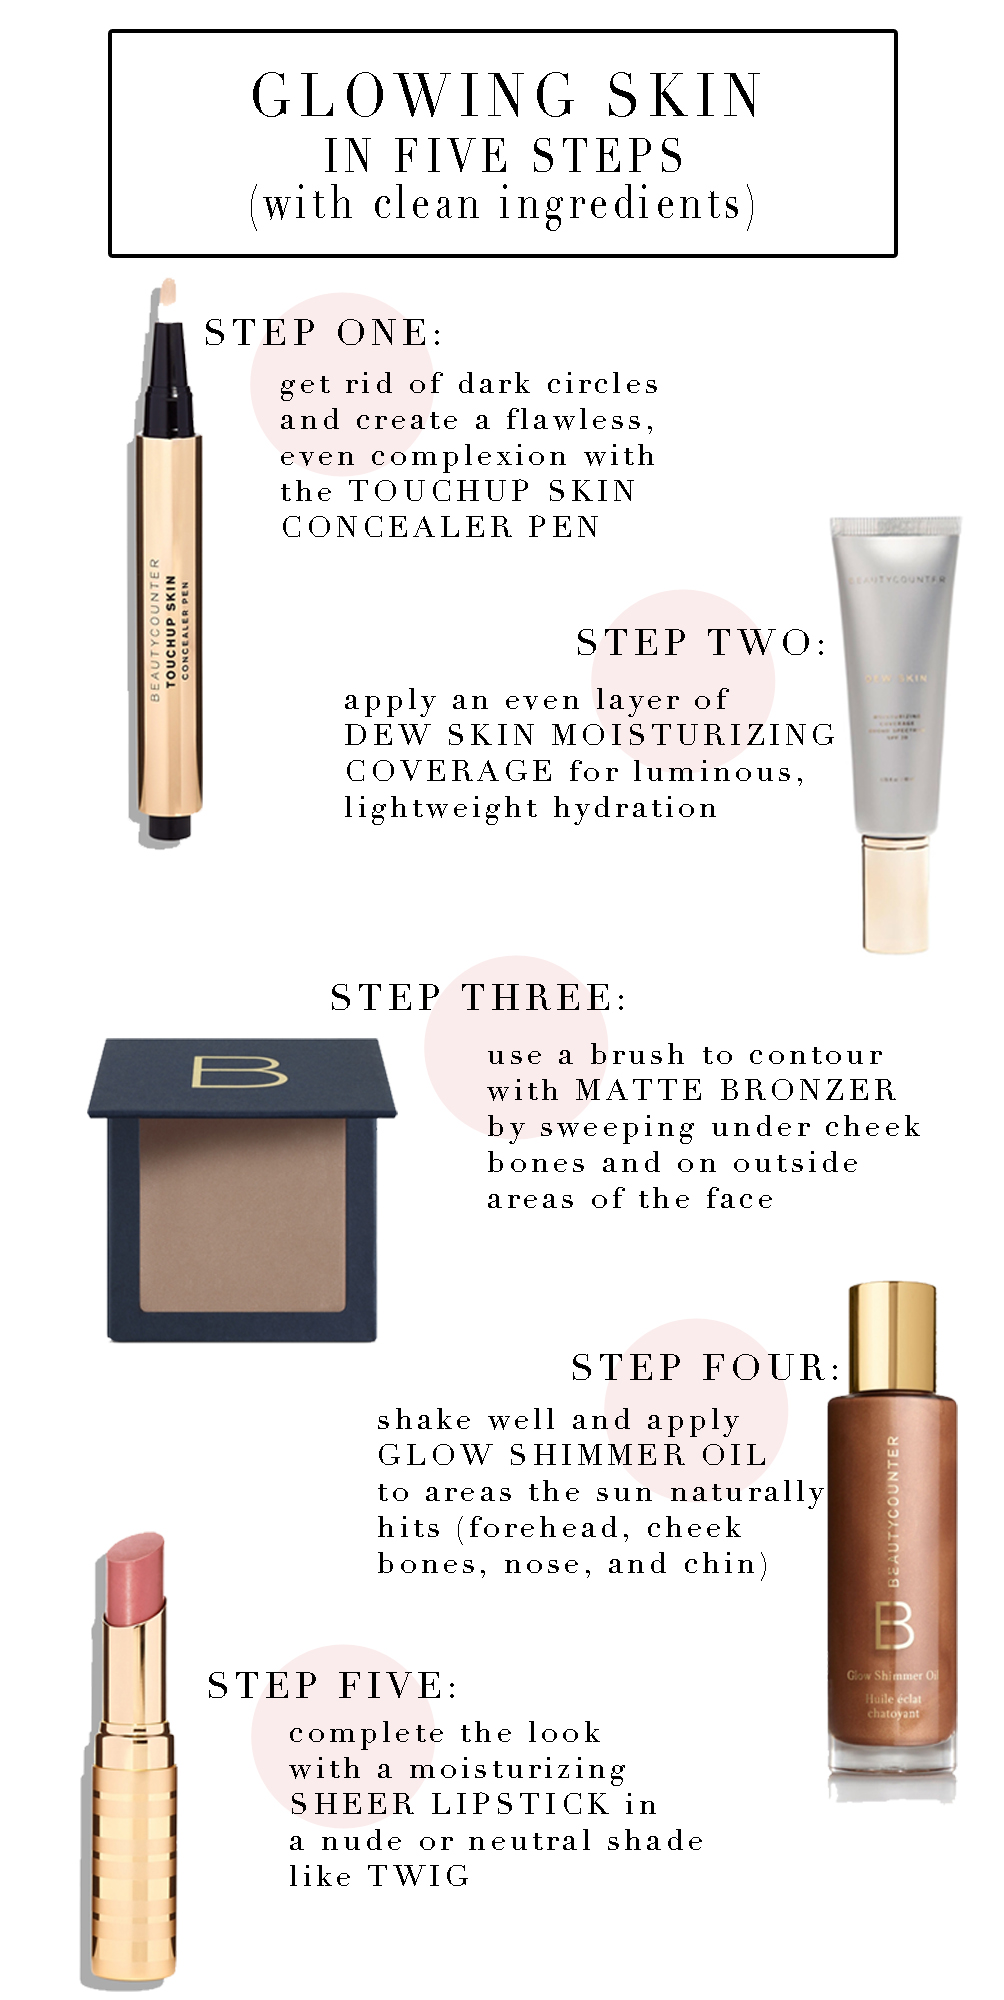 glowing skin in five steps with clean beauty products from Beautycounter